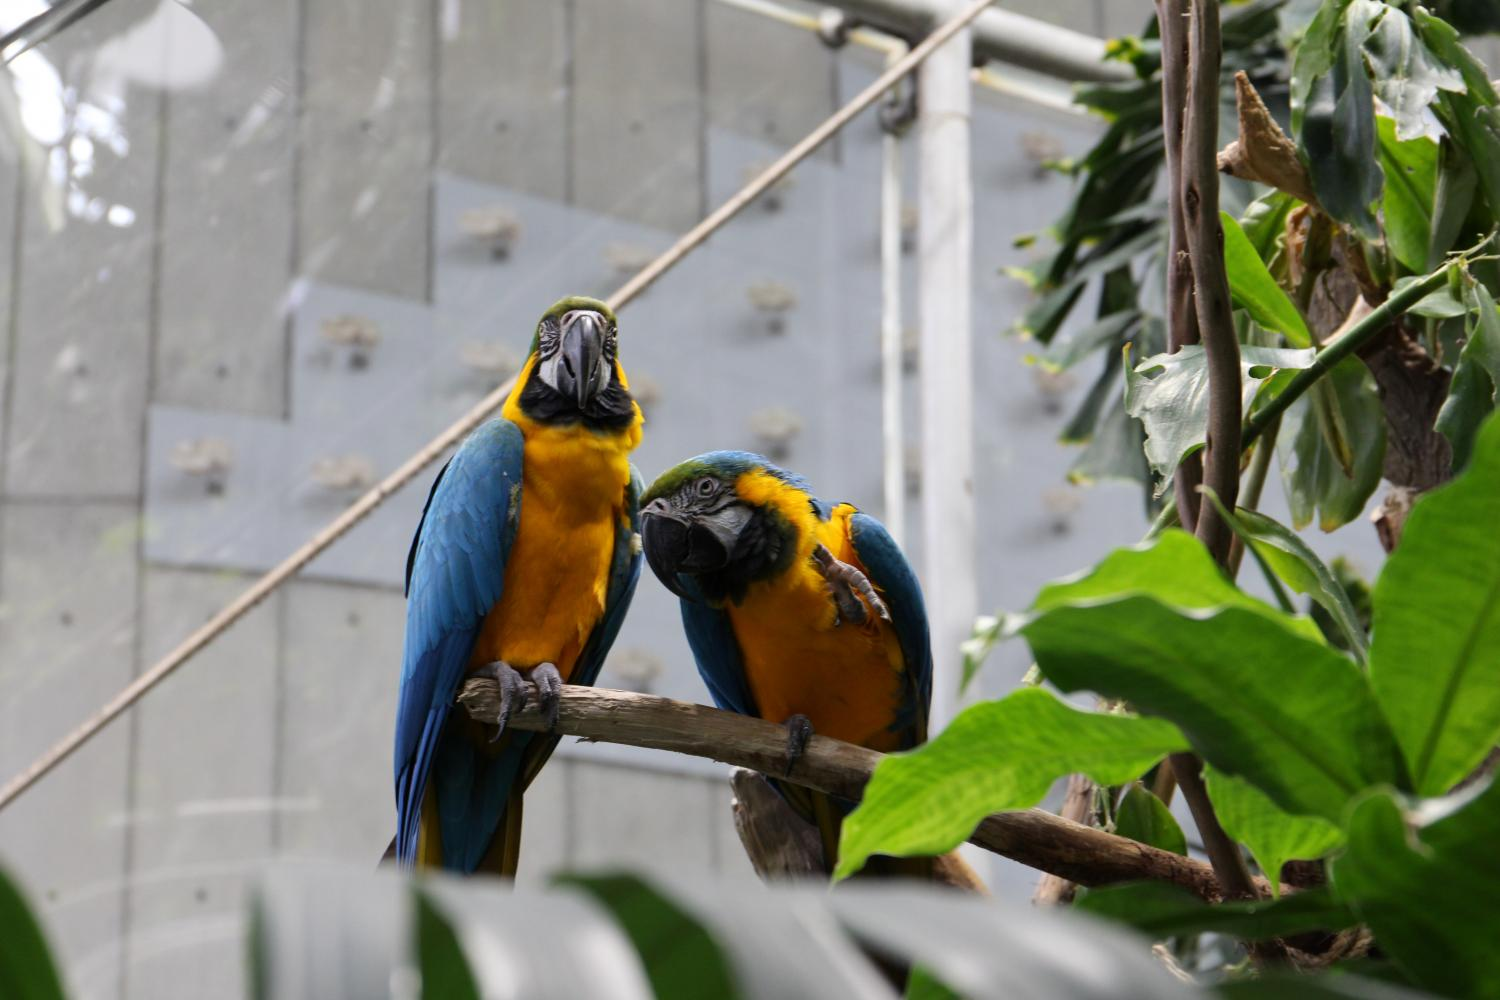 The macaw, long-tailed, colorful birds inhabiting forested areas, is the only species that fly freely in the Rainforest Dome.